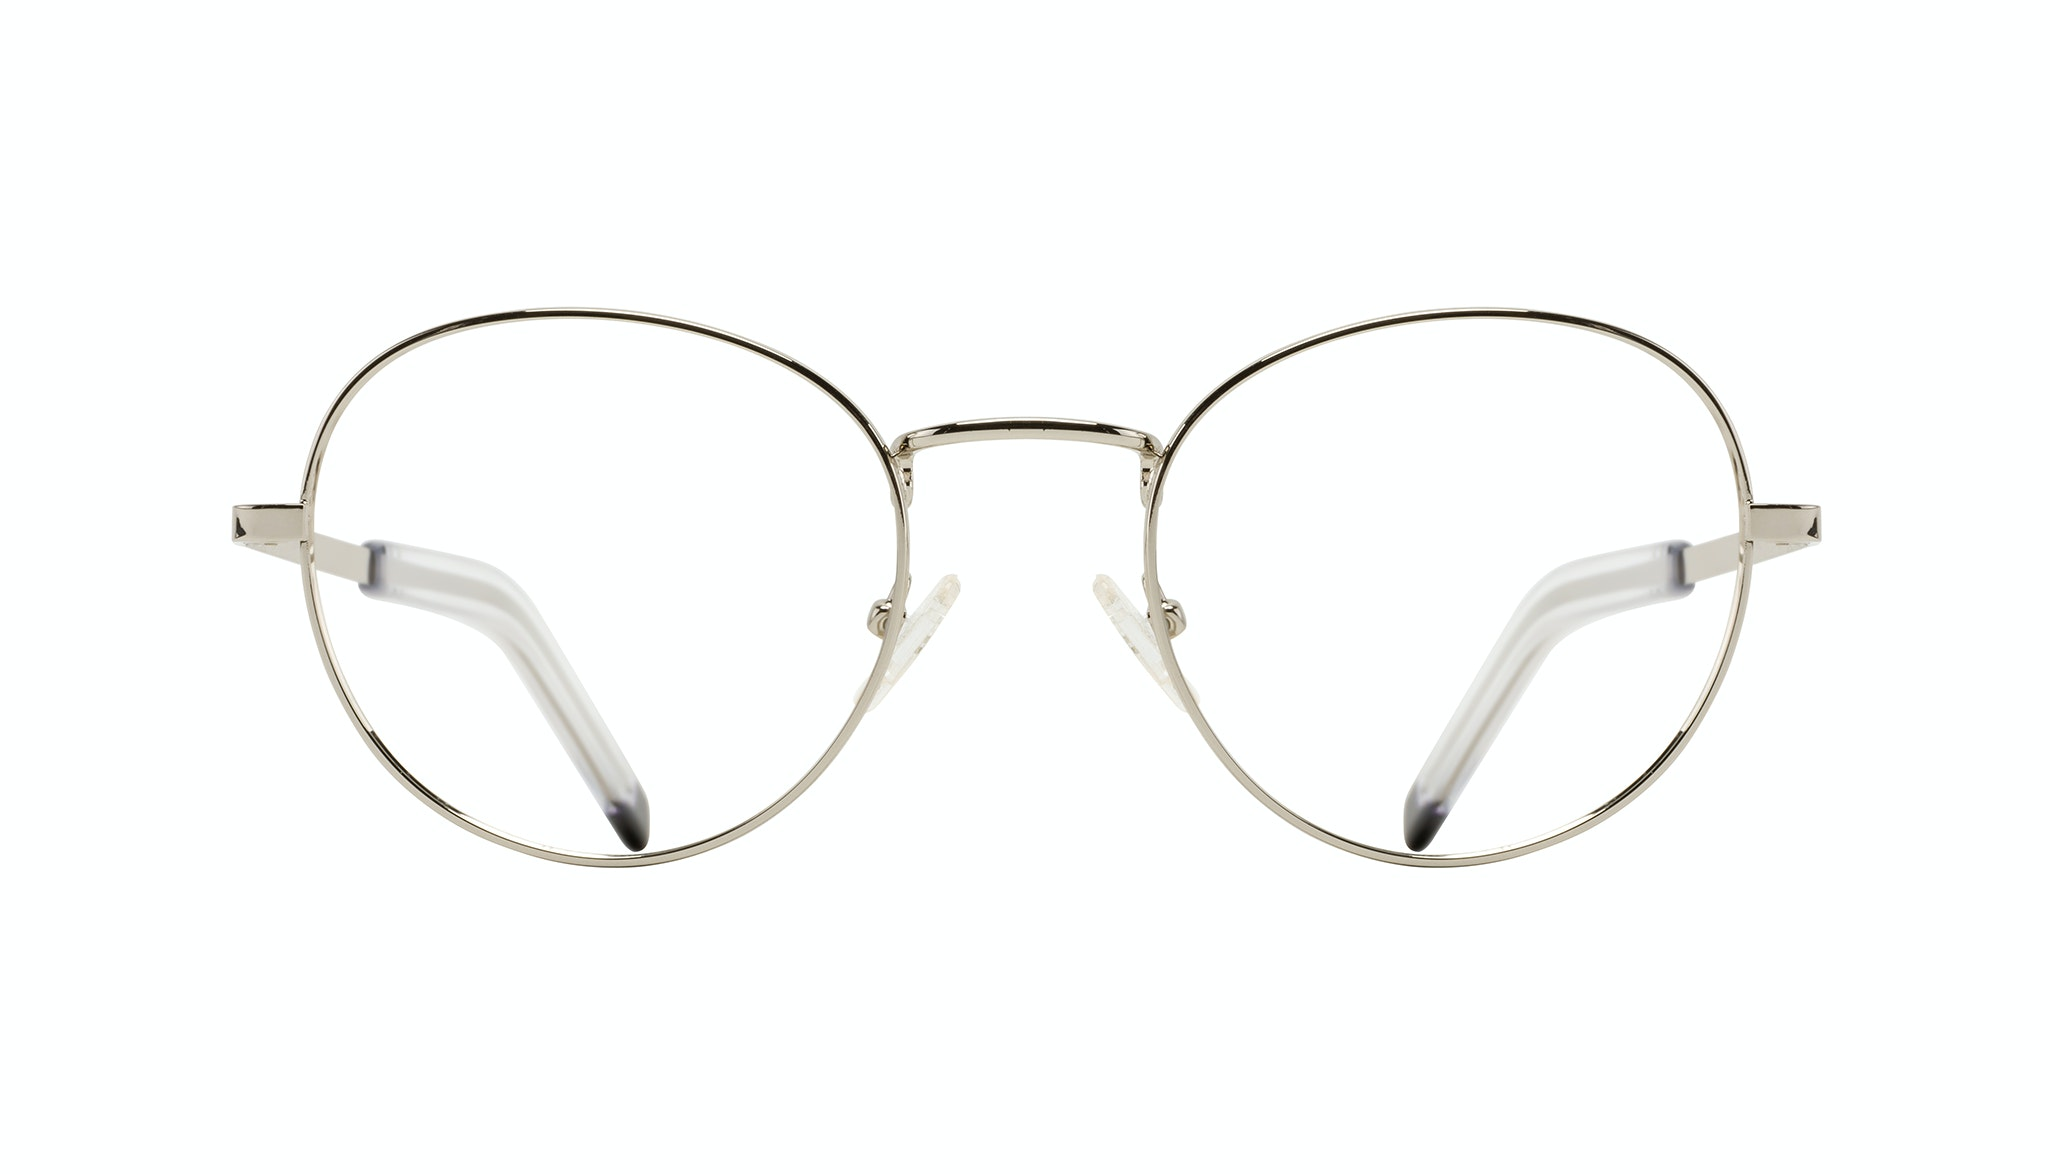 Affordable Fashion Glasses Round Eyeglasses Men Lean XL Silver